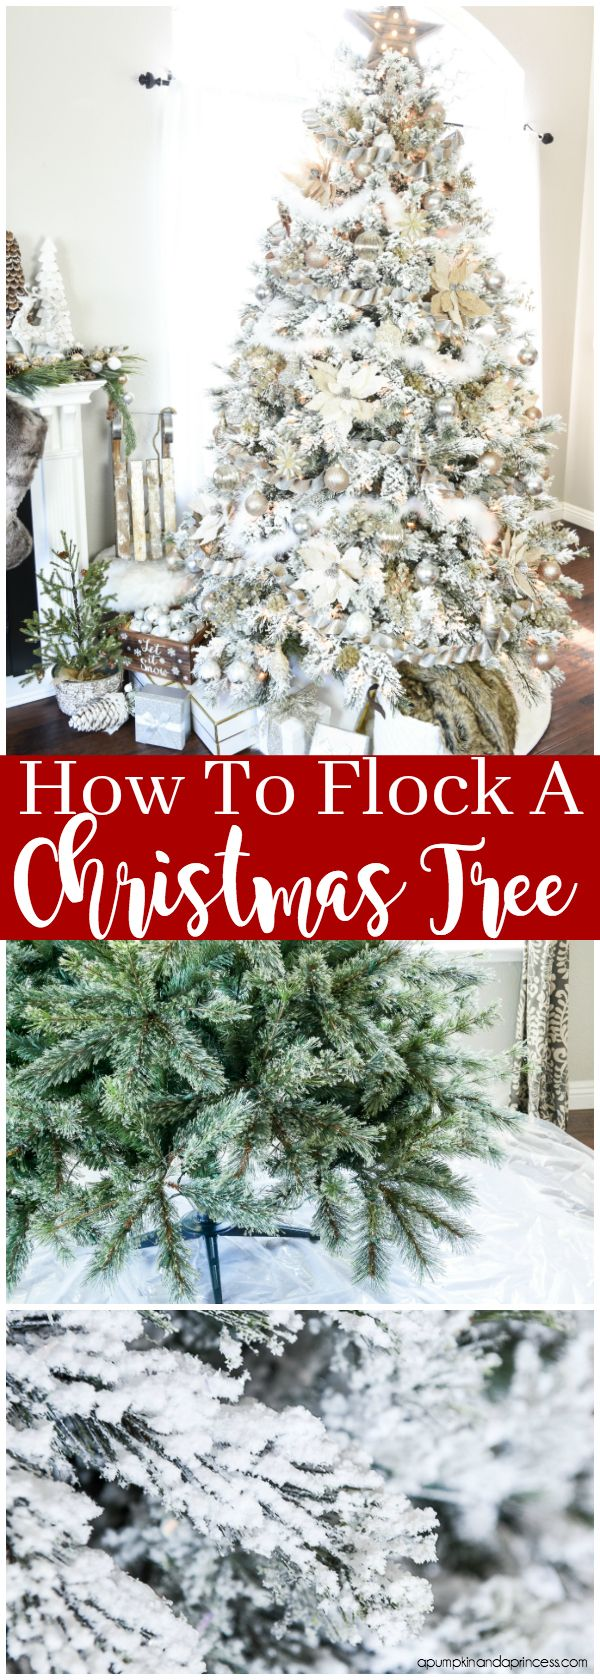 How to flock a christmas tree artificial tree christmas tree and snow how to flock a christmas tree create a snow effect on your artificial tree with this easy diy flocking tutorial solutioingenieria